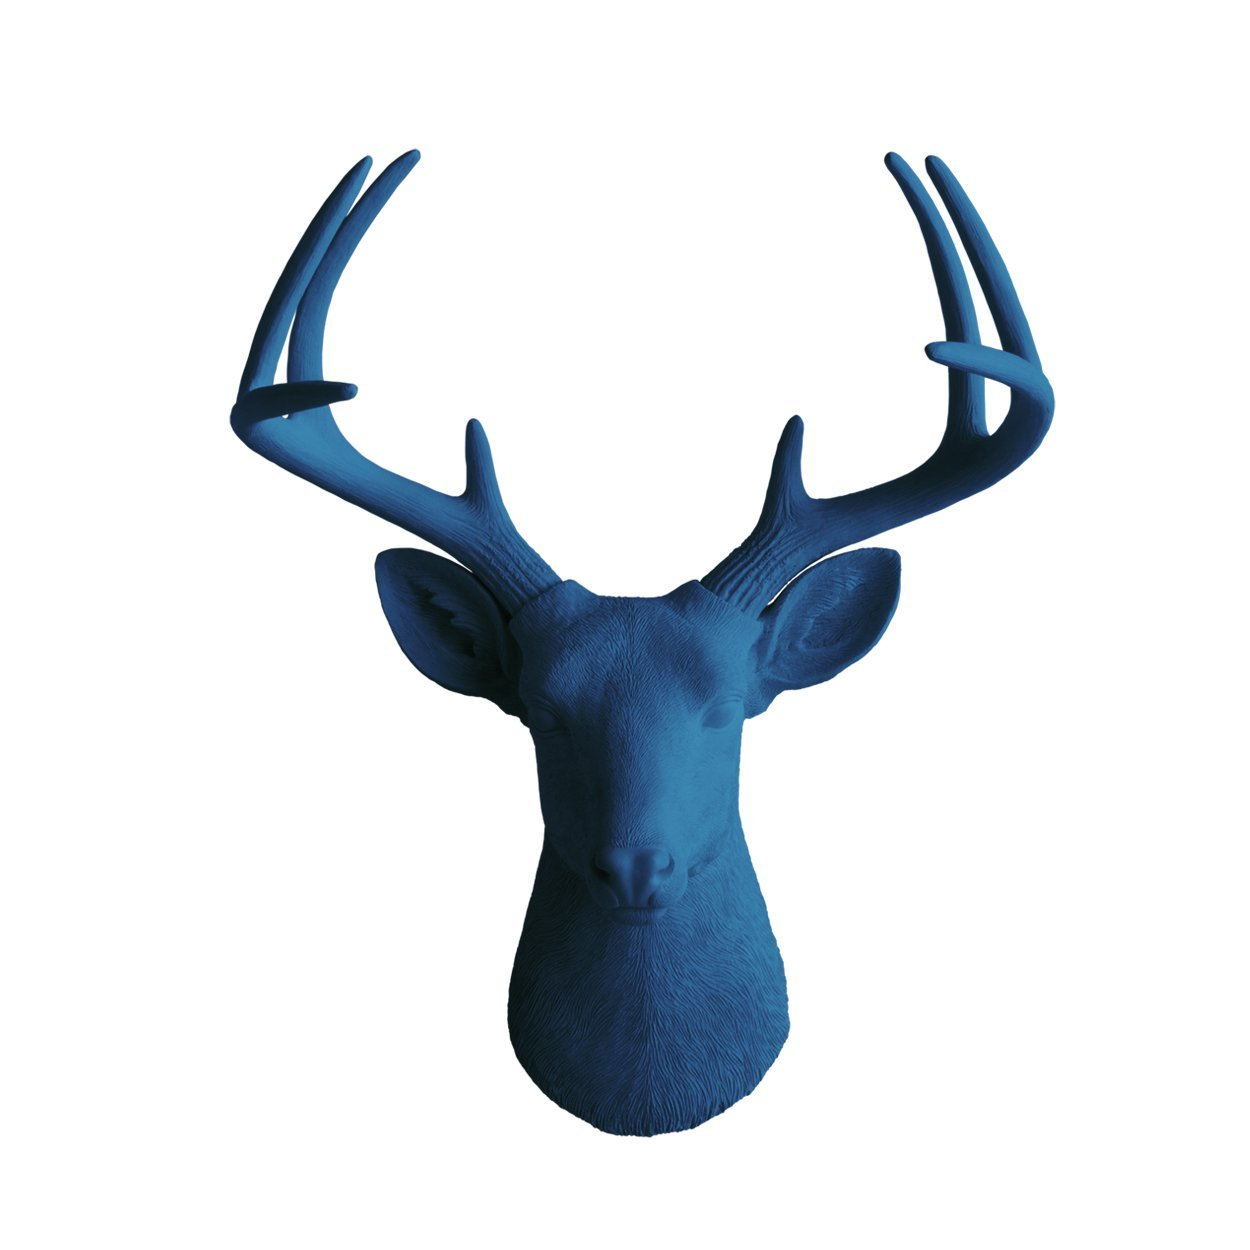 Cheap Deer Head, Find Deer Head Deals On Line At Alibaba Pertaining To 2019 Large Deer Head Faux Taxidermy Wall Decor (View 14 of 20)